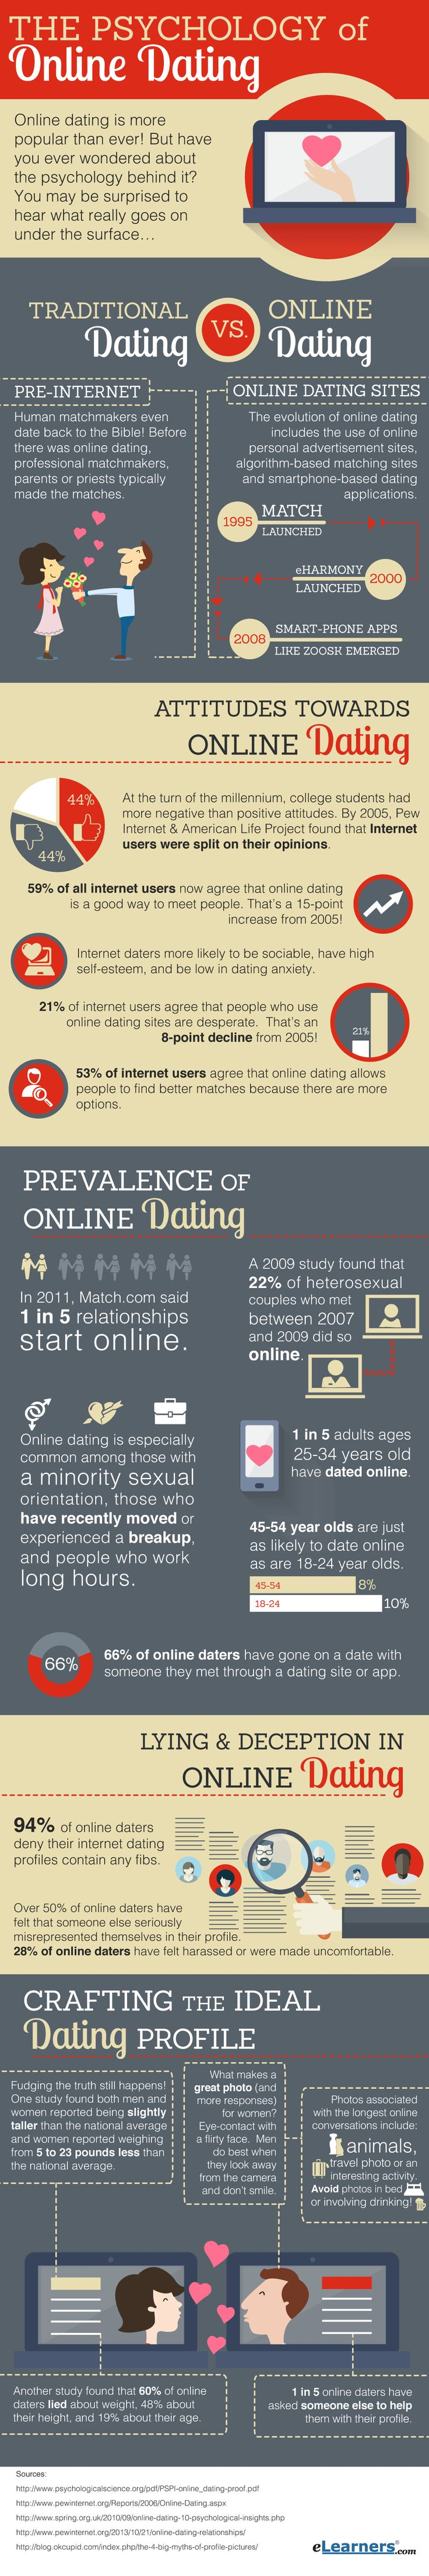 Online dating early statitics